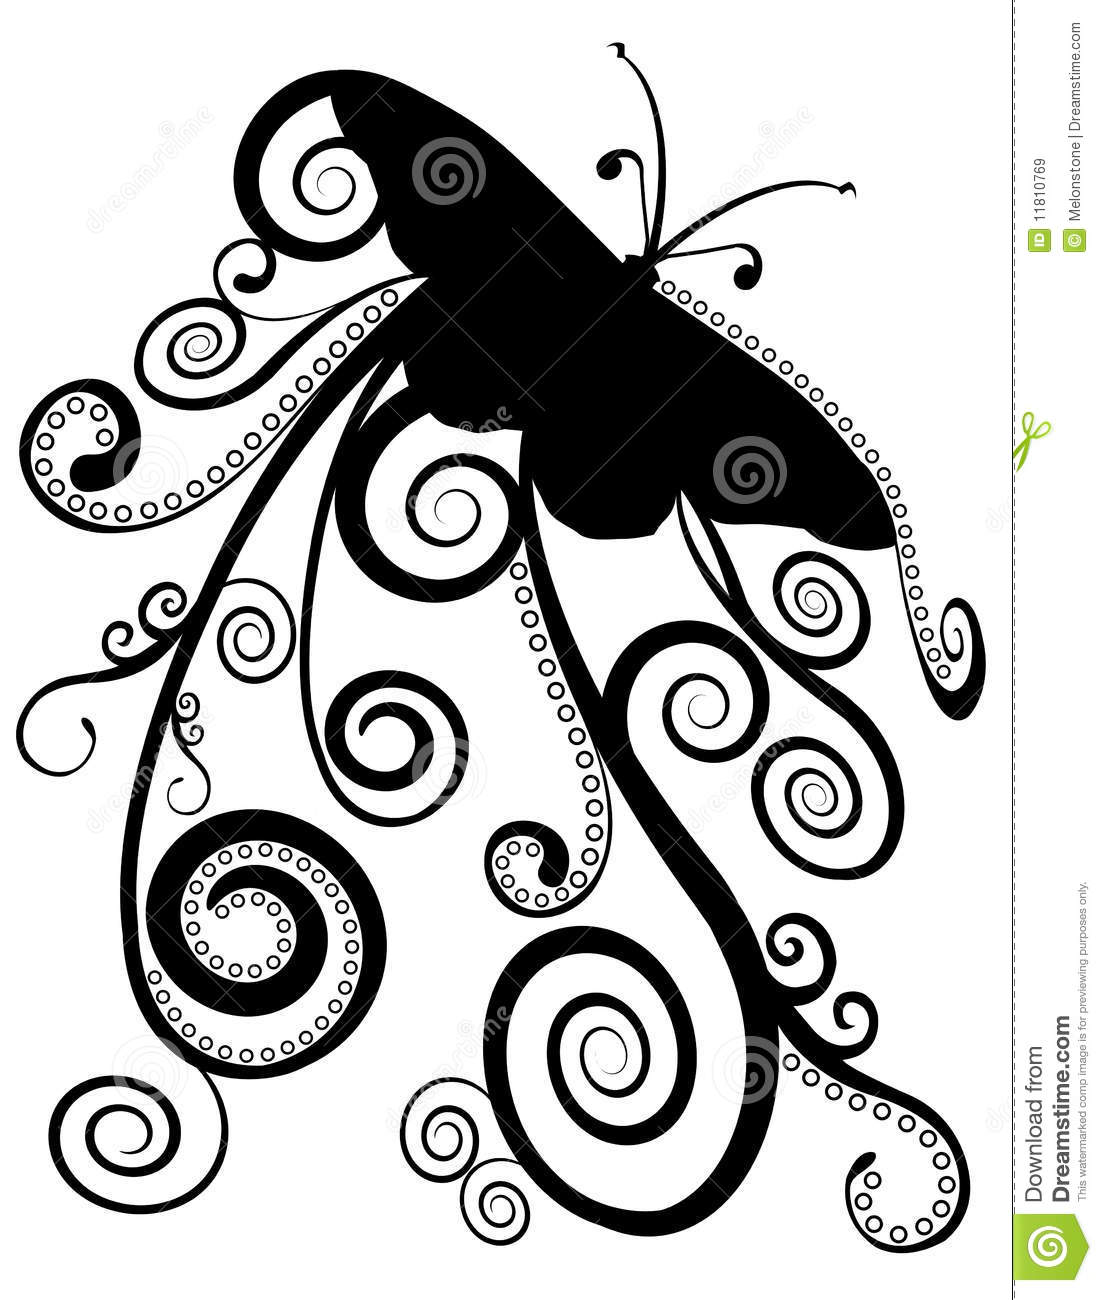 Butterfly Spirals Design Royalty Free Stock Images